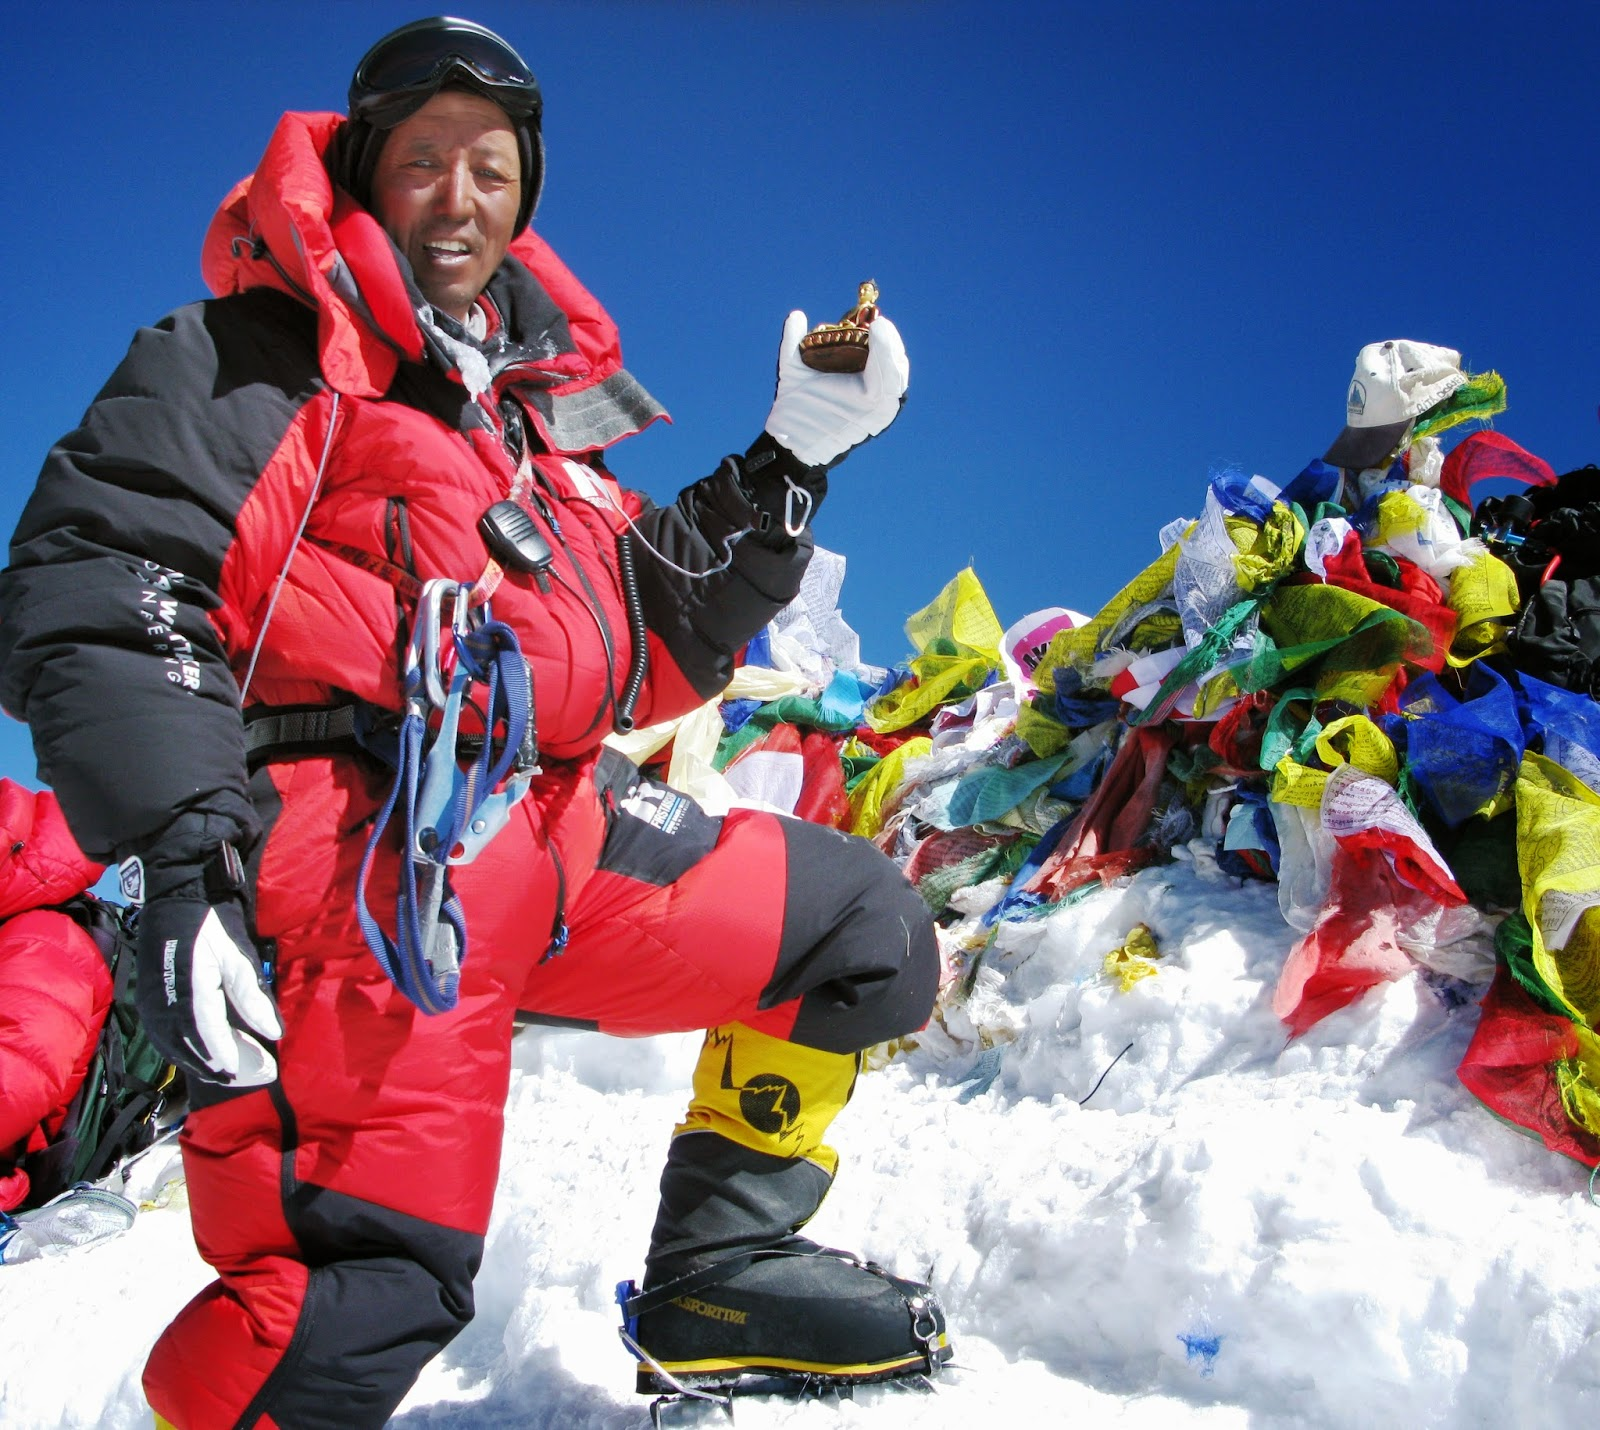 Apa Sherpa on the summit of Everest with a memorial to Sir Edmund Hillary who passed away in 2008. Photo credit: Apa Sherpa Foundation